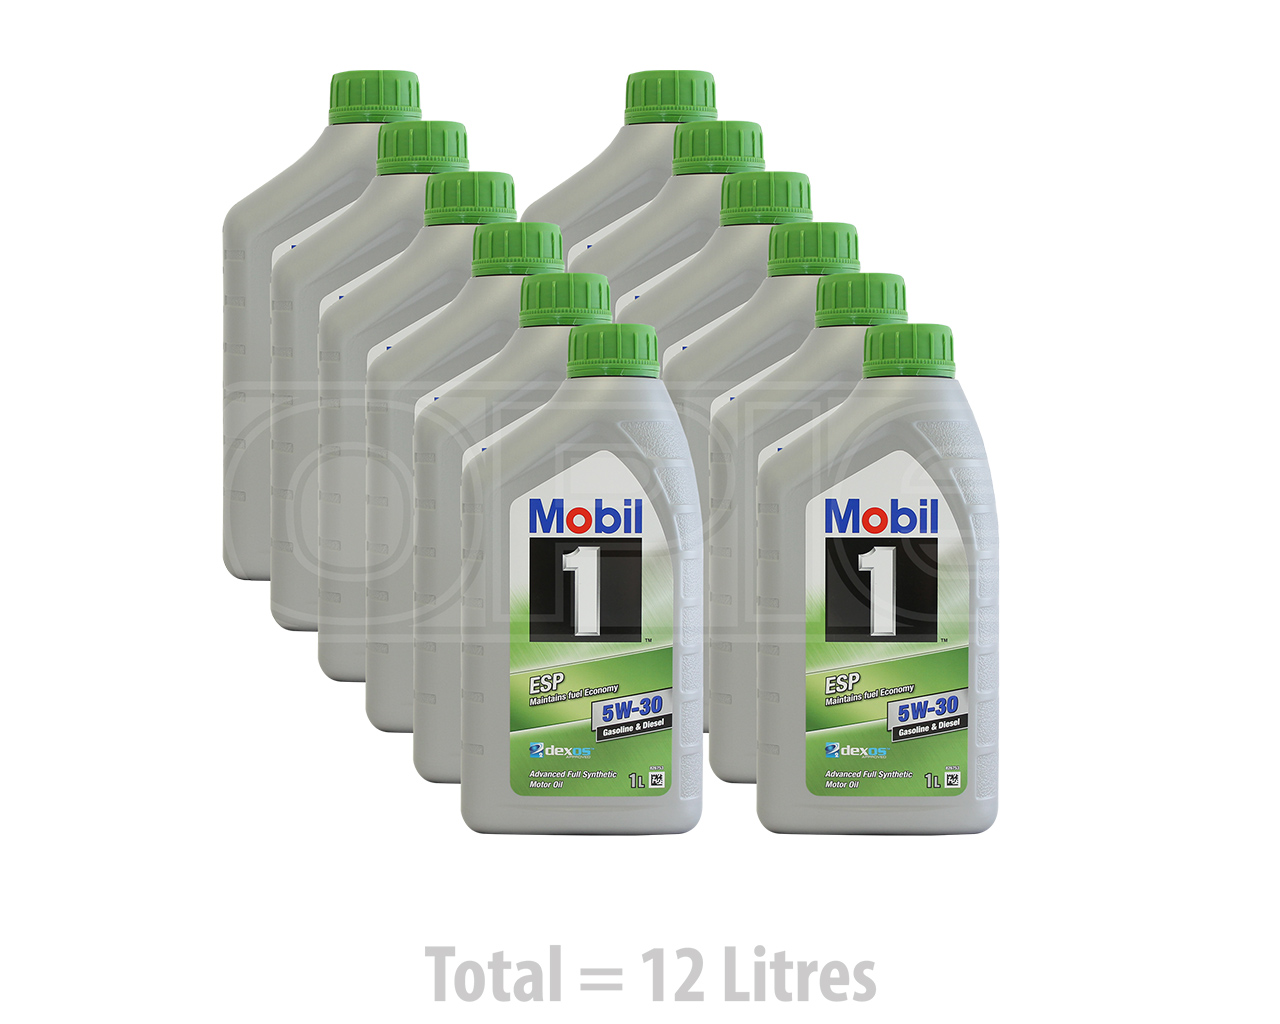 Mobil 1 ESP 5W-30 Fully Synthetic Engine Oil